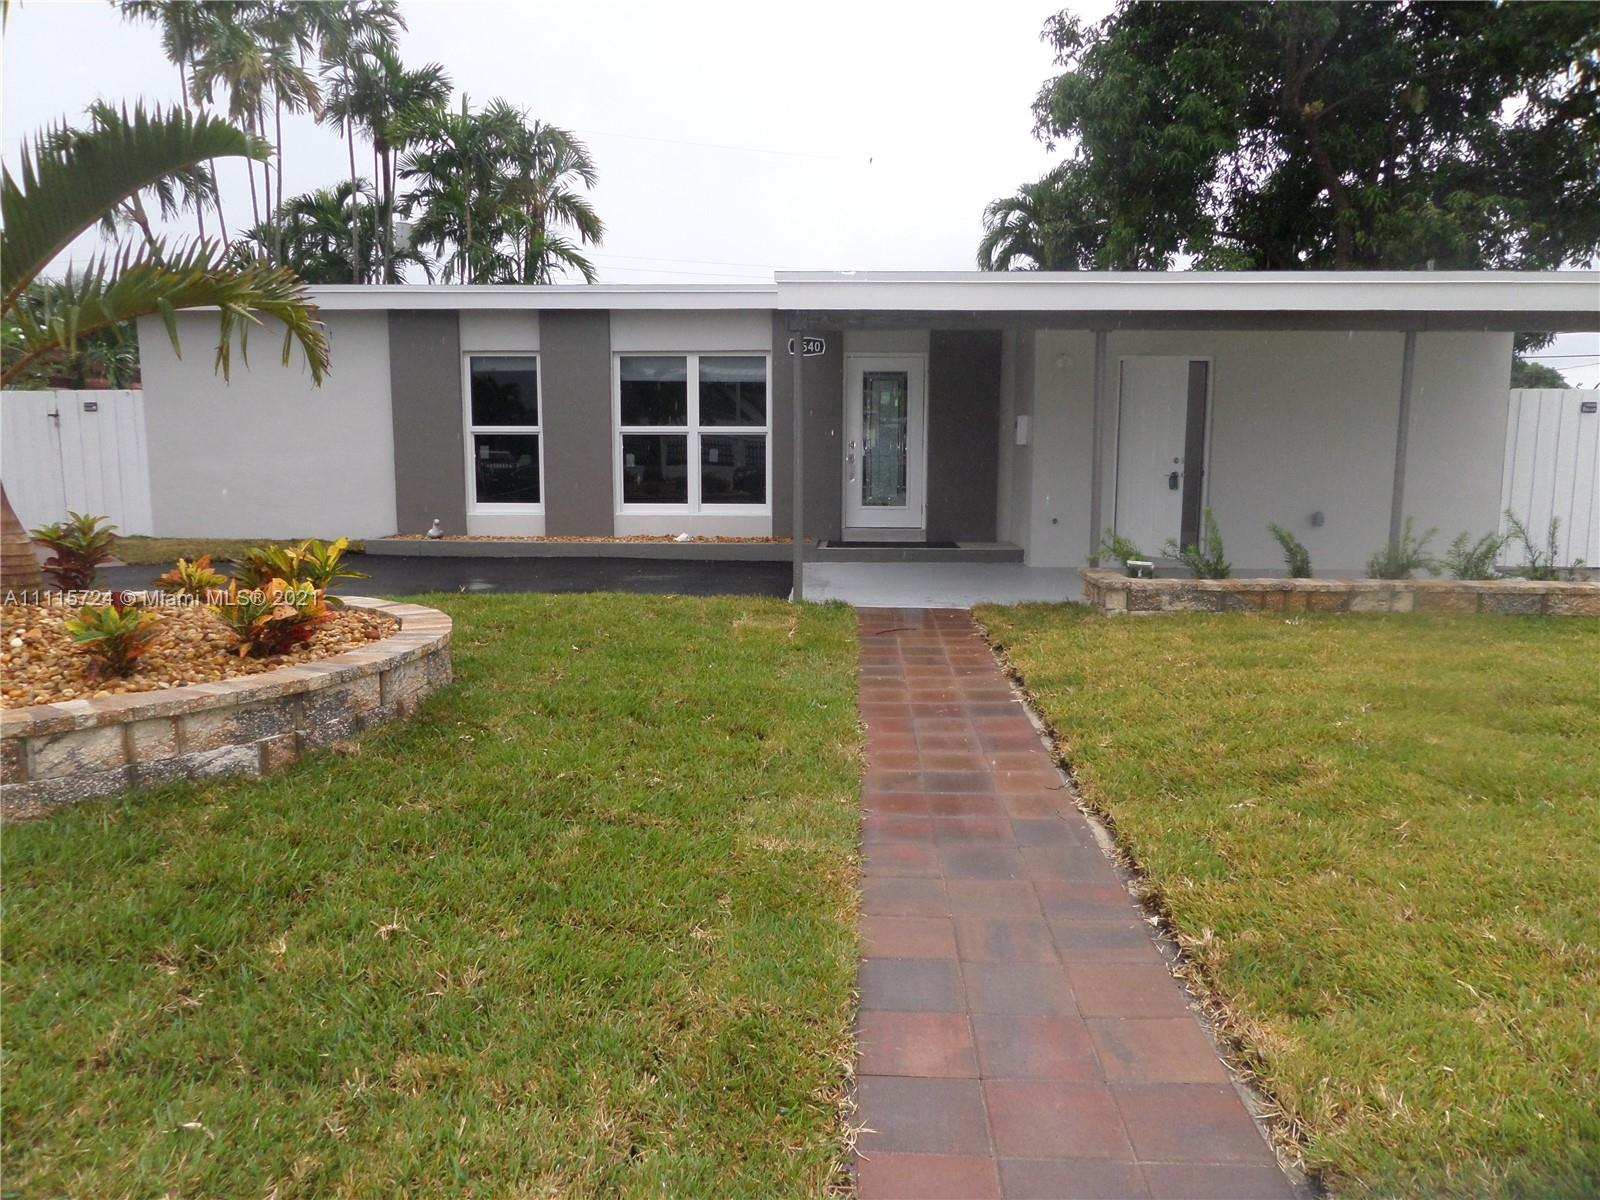 Single Family Home,For Rent,6540 W 11th Ave, Hialeah, Florida 33012,Brickell,realty,broker,condos near me